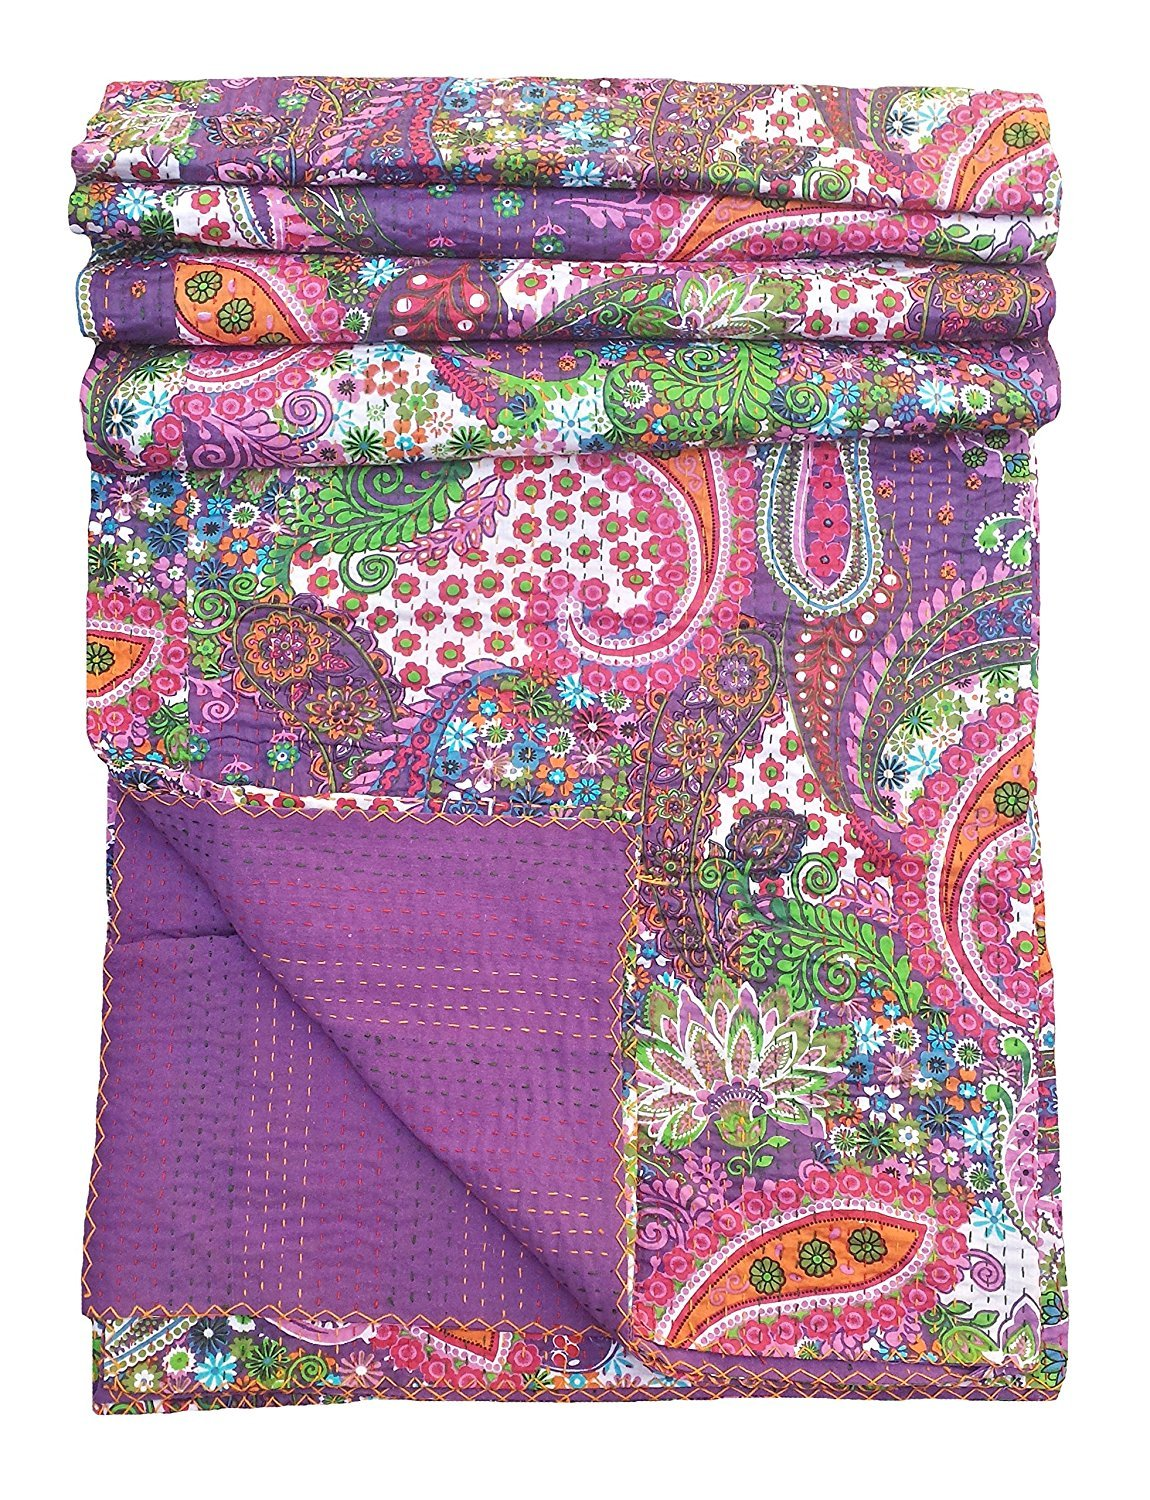 INDIAN CREATIONS Multicolor Paisley Print King Size Kantha Quilt, Kantha Blanket, Bed Cover, King Kantha bedspread, Bohemian Bedding Kantha Size 90 Inch x 108 Inch